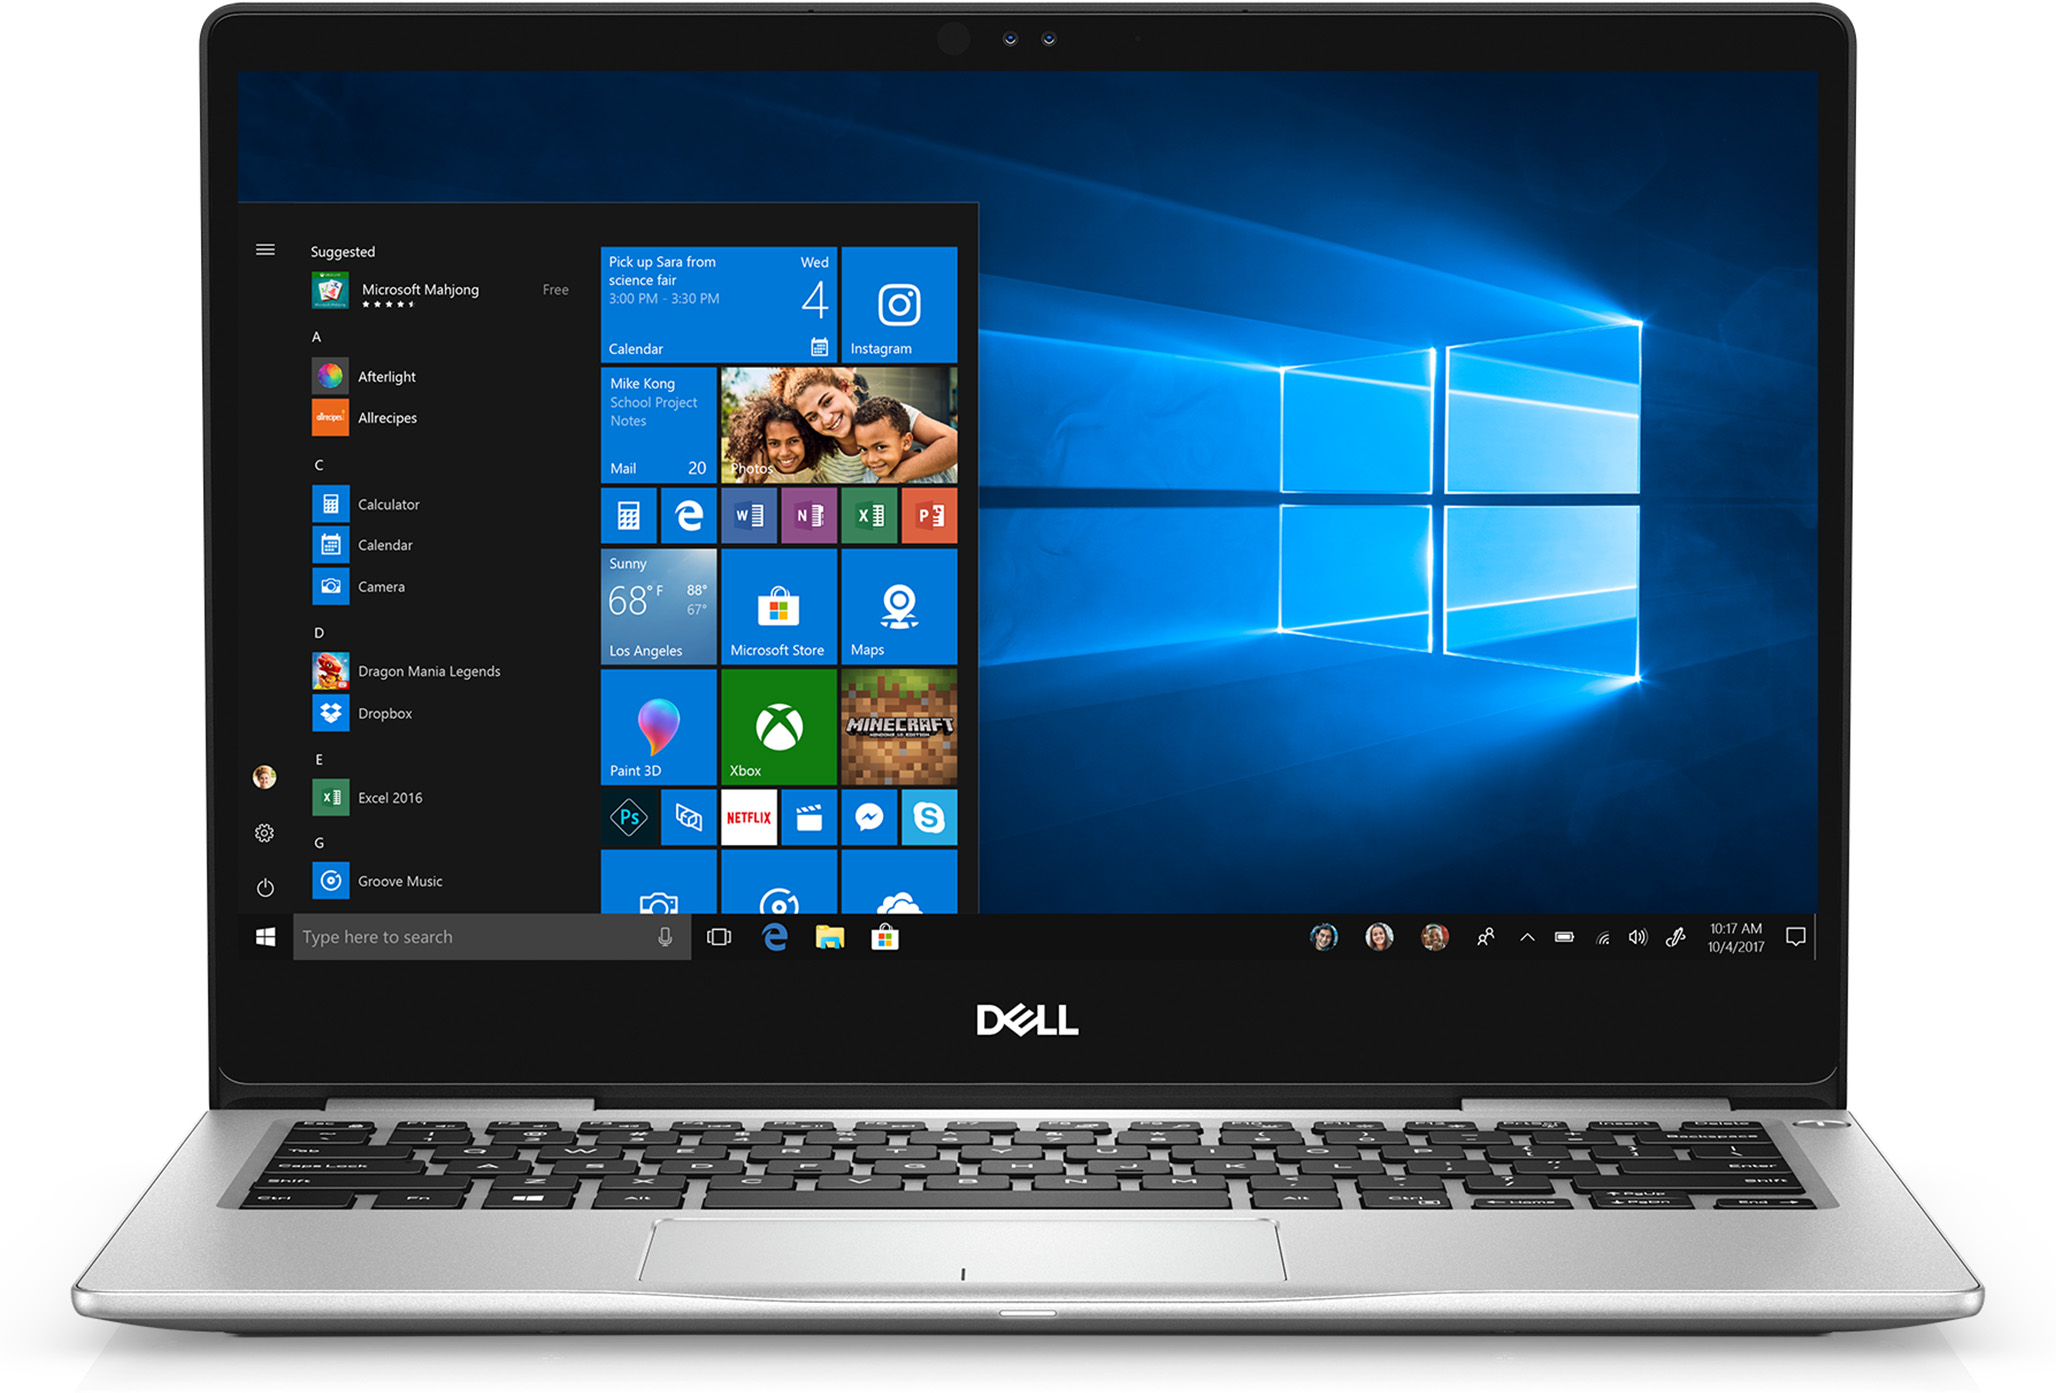 Dell Inspiron 13 i7370-5593SLV-PUS Laptop• 13.3-inch Full HD touchscreen • Intel i5 8th Gen • 8GB memory/256GB SSD